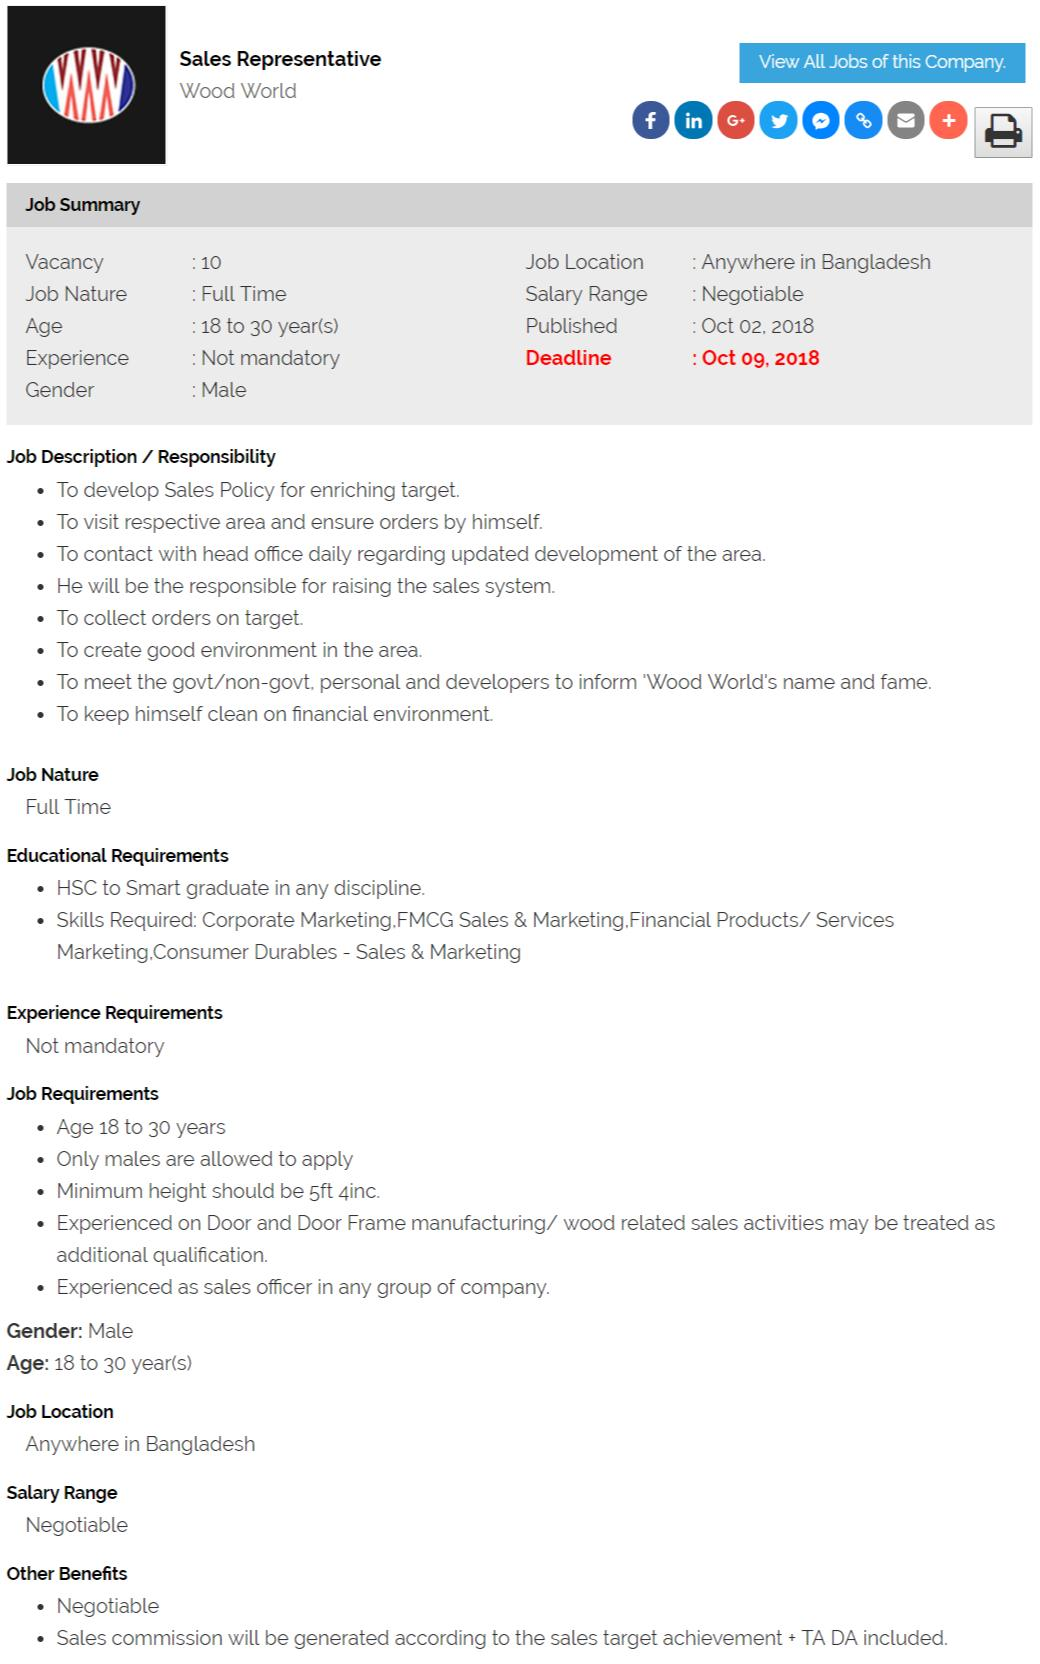 Wood World Job circular - Sales Representative